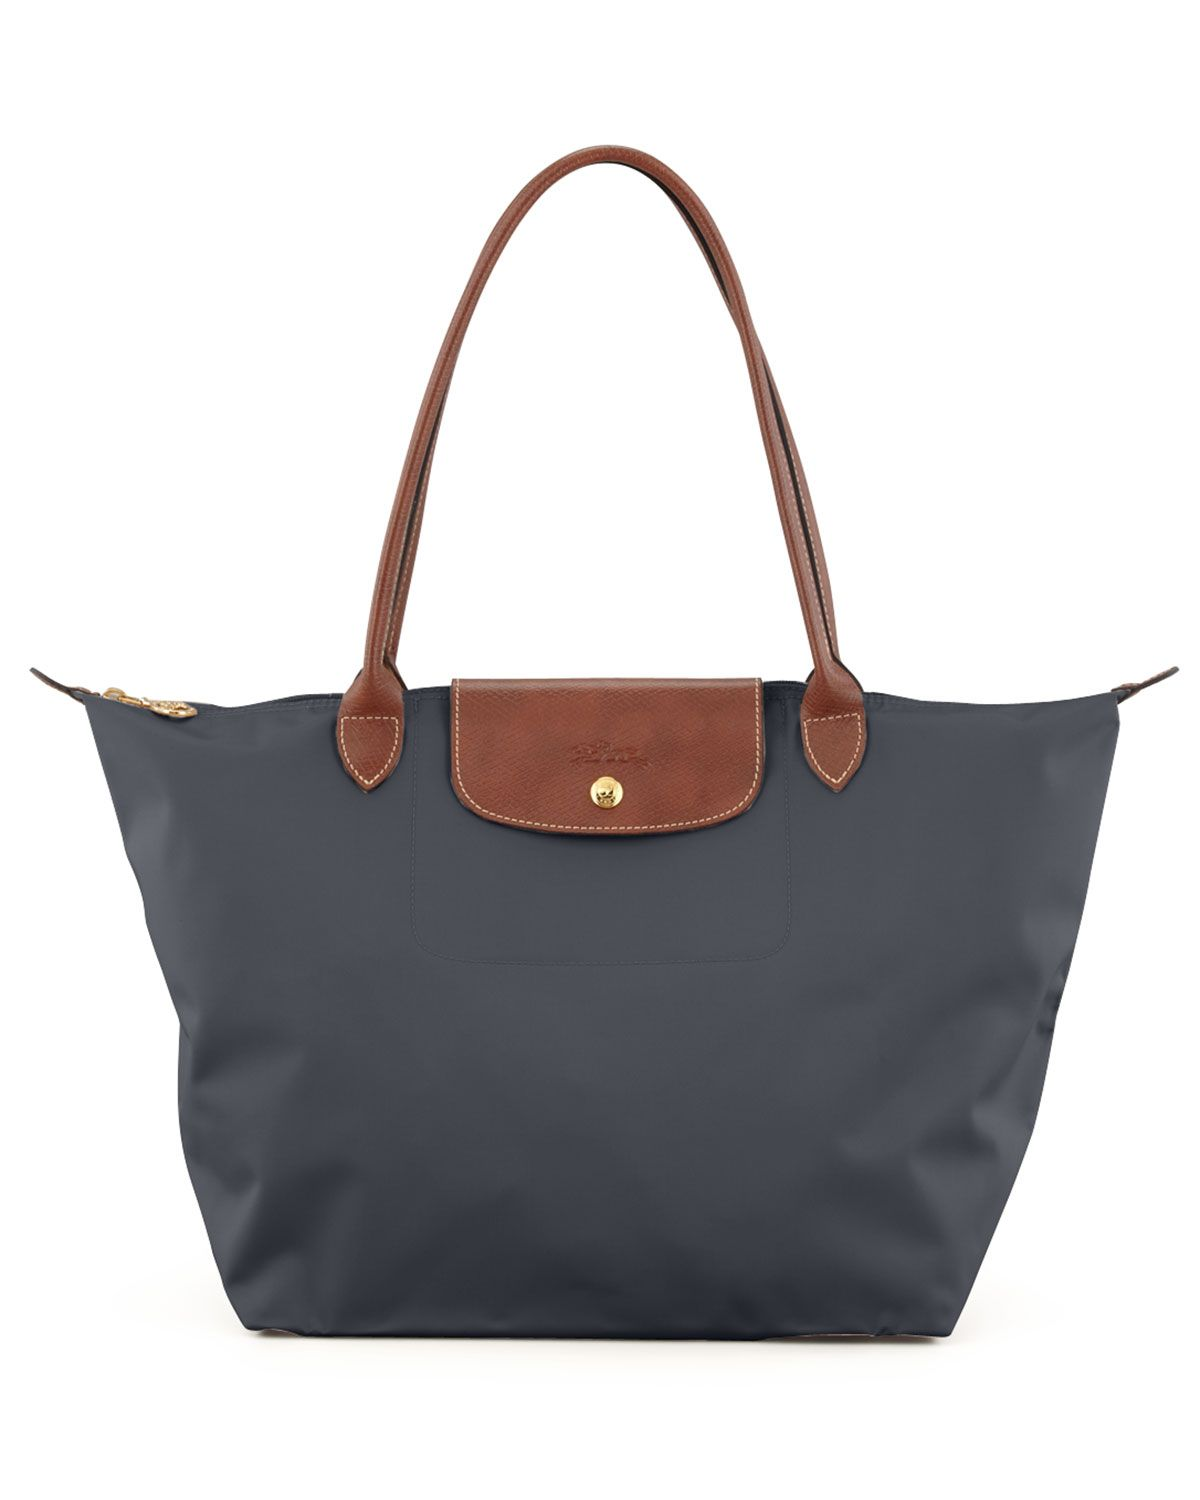 Can be folded into small. Le Pliage Large Monogram Shoulder Tote Bag, Dark  Gray, Grey - Longchamp fc710b7d93